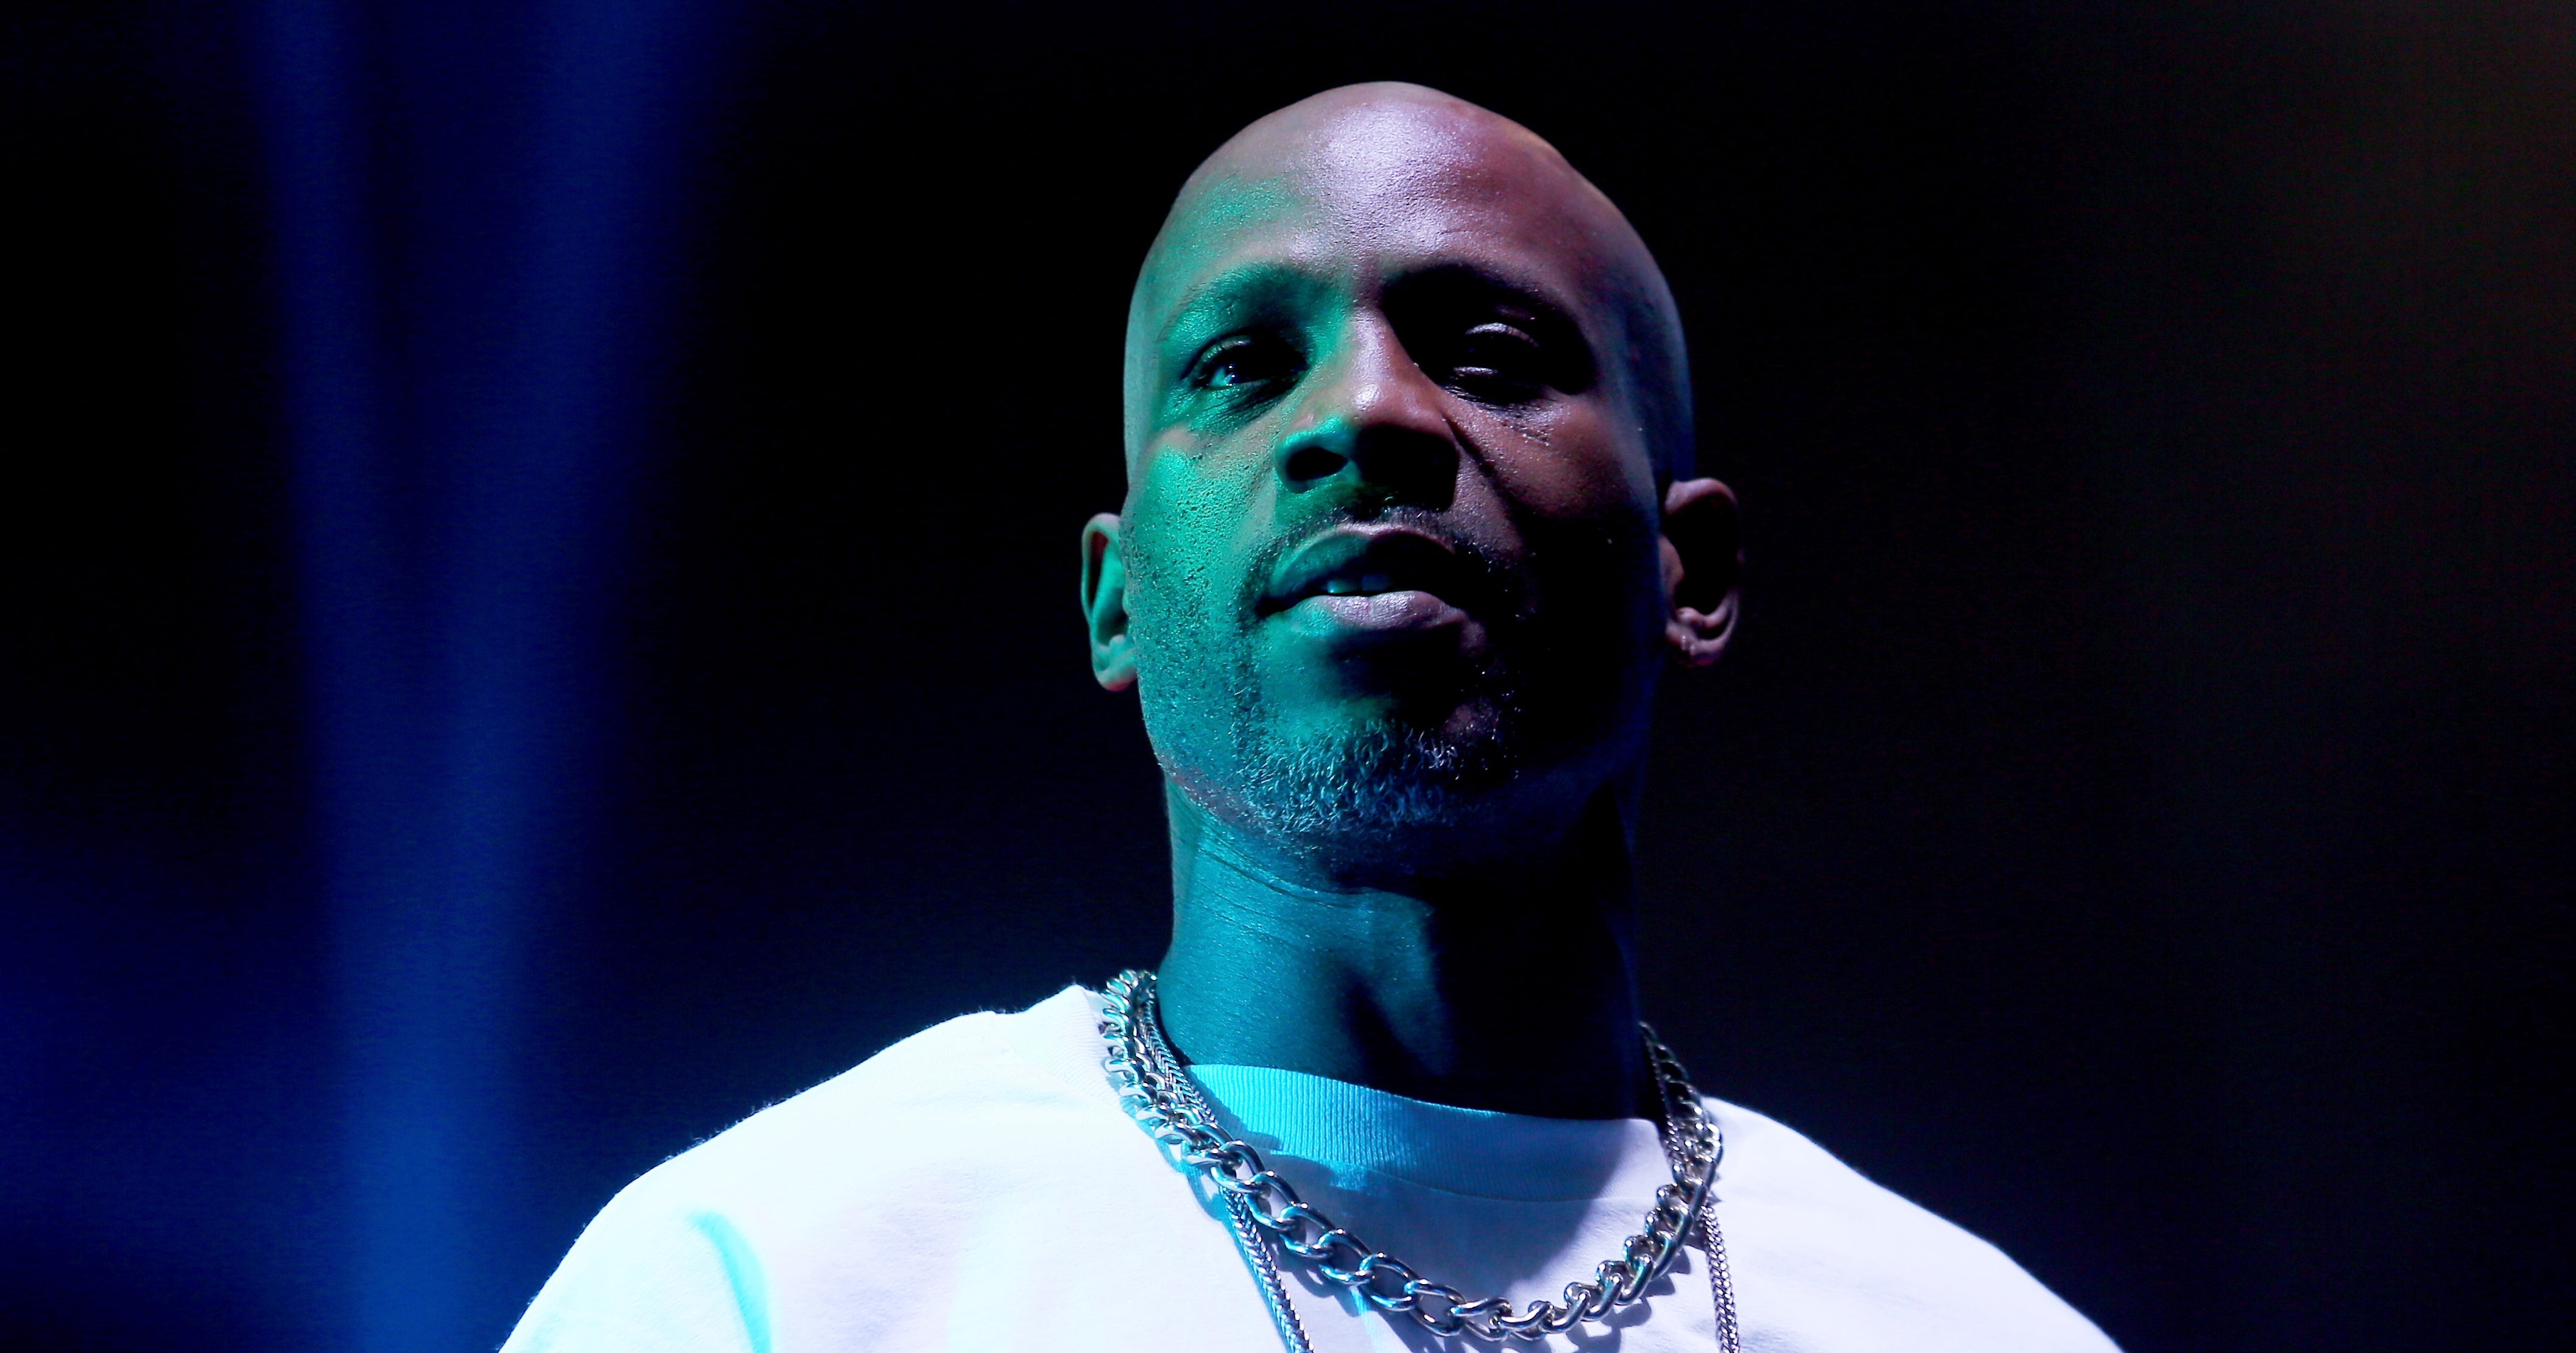 DMX's Death Has Exposed The Insensitivity That Still Surrounds Substance Use